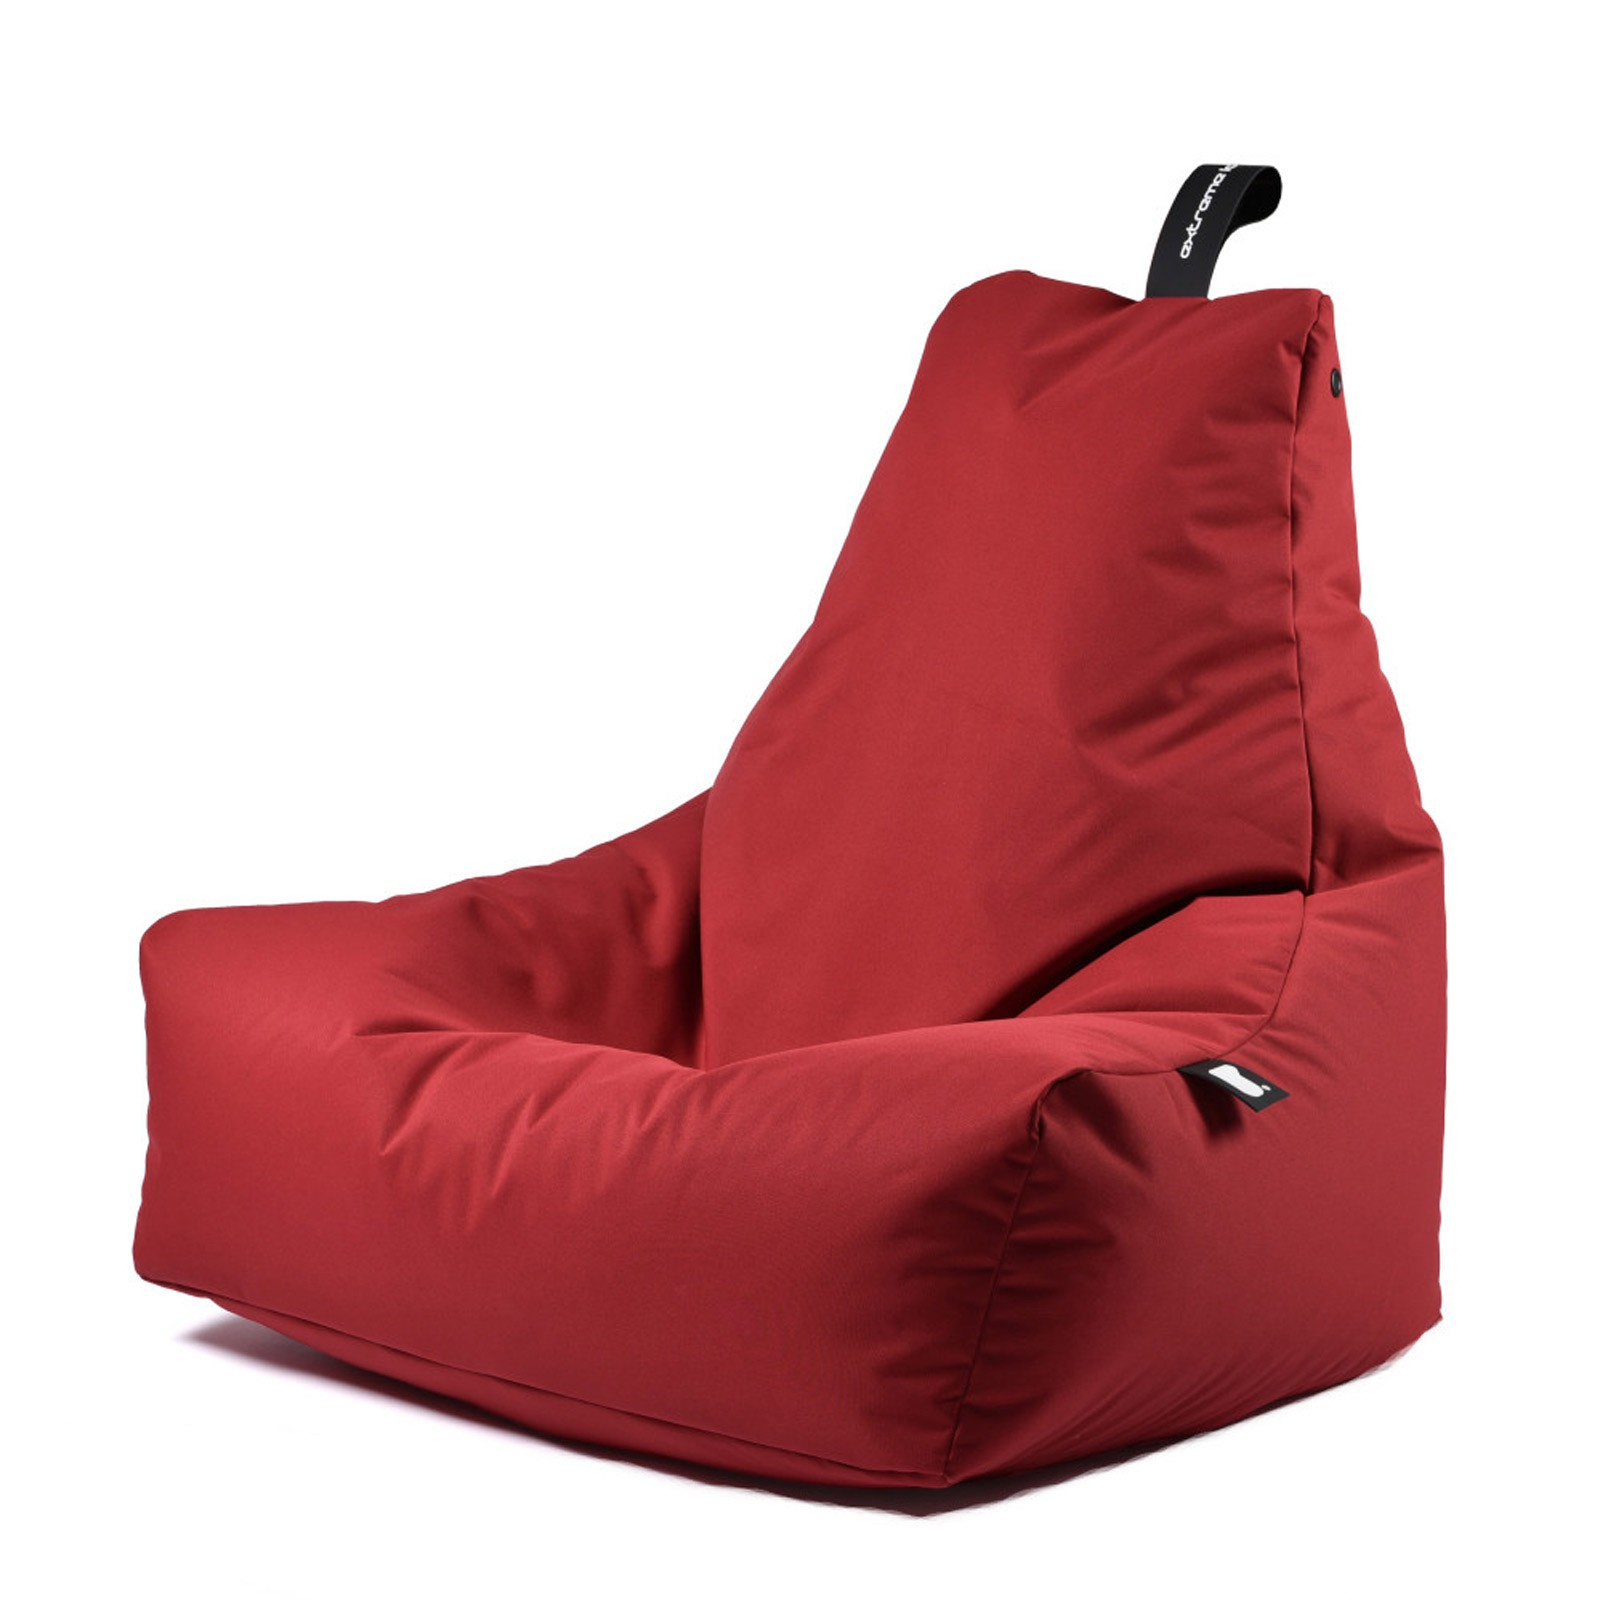 b-bag Extreme Lounging Sitzsack Indoor + Outdoor mighty-b Farbe Red